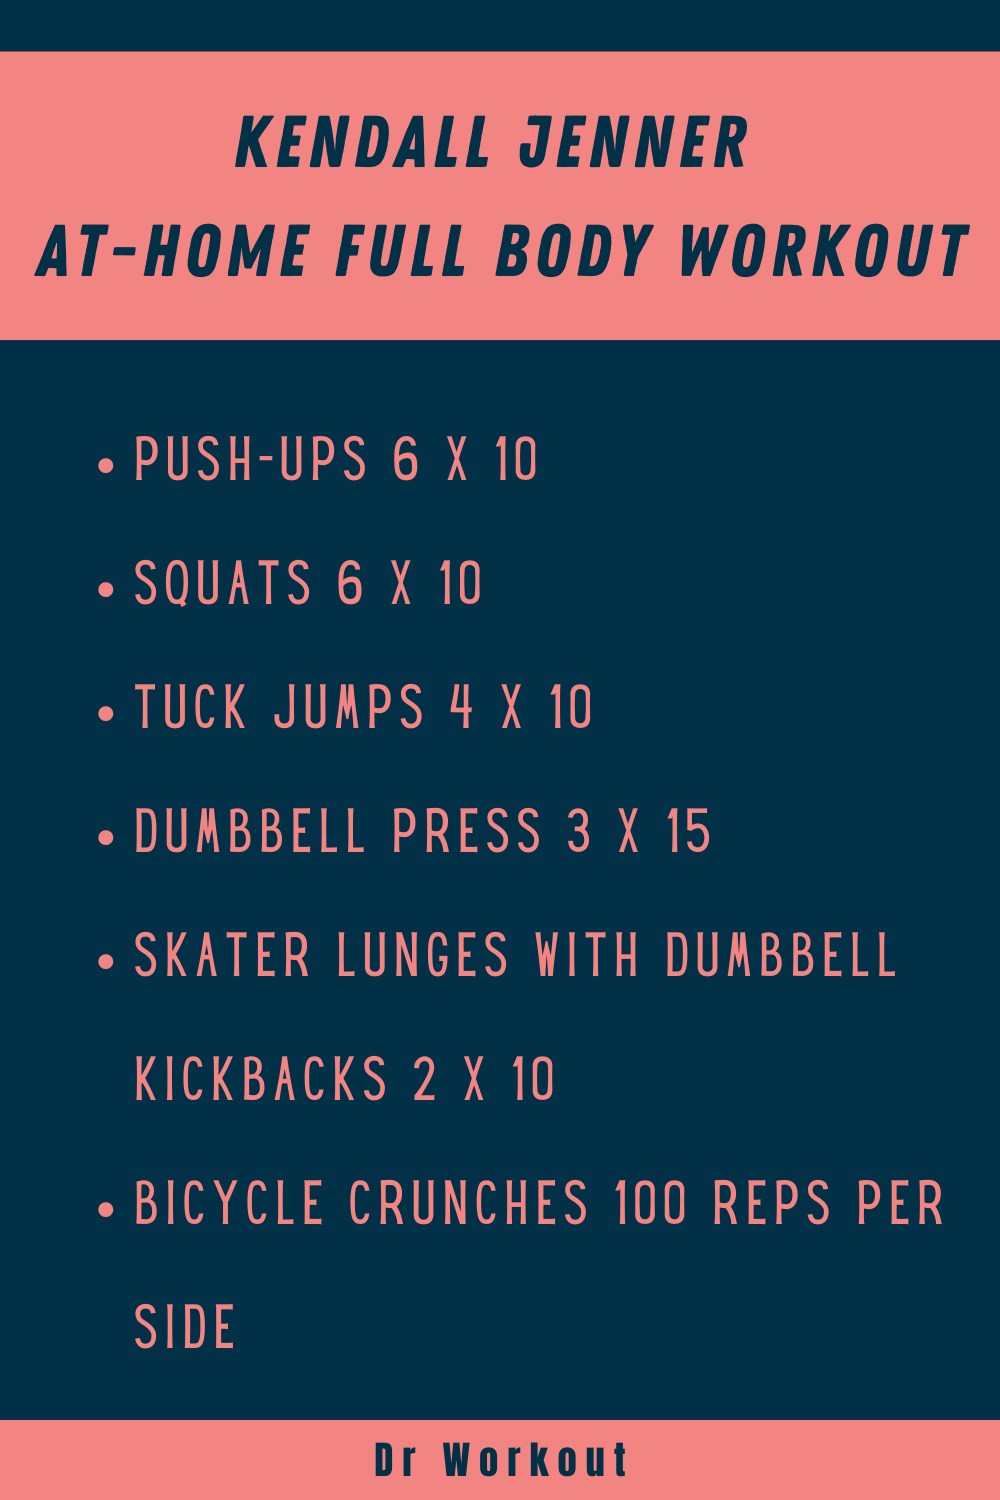 Kendall Jenner At-Home Full Body Workout